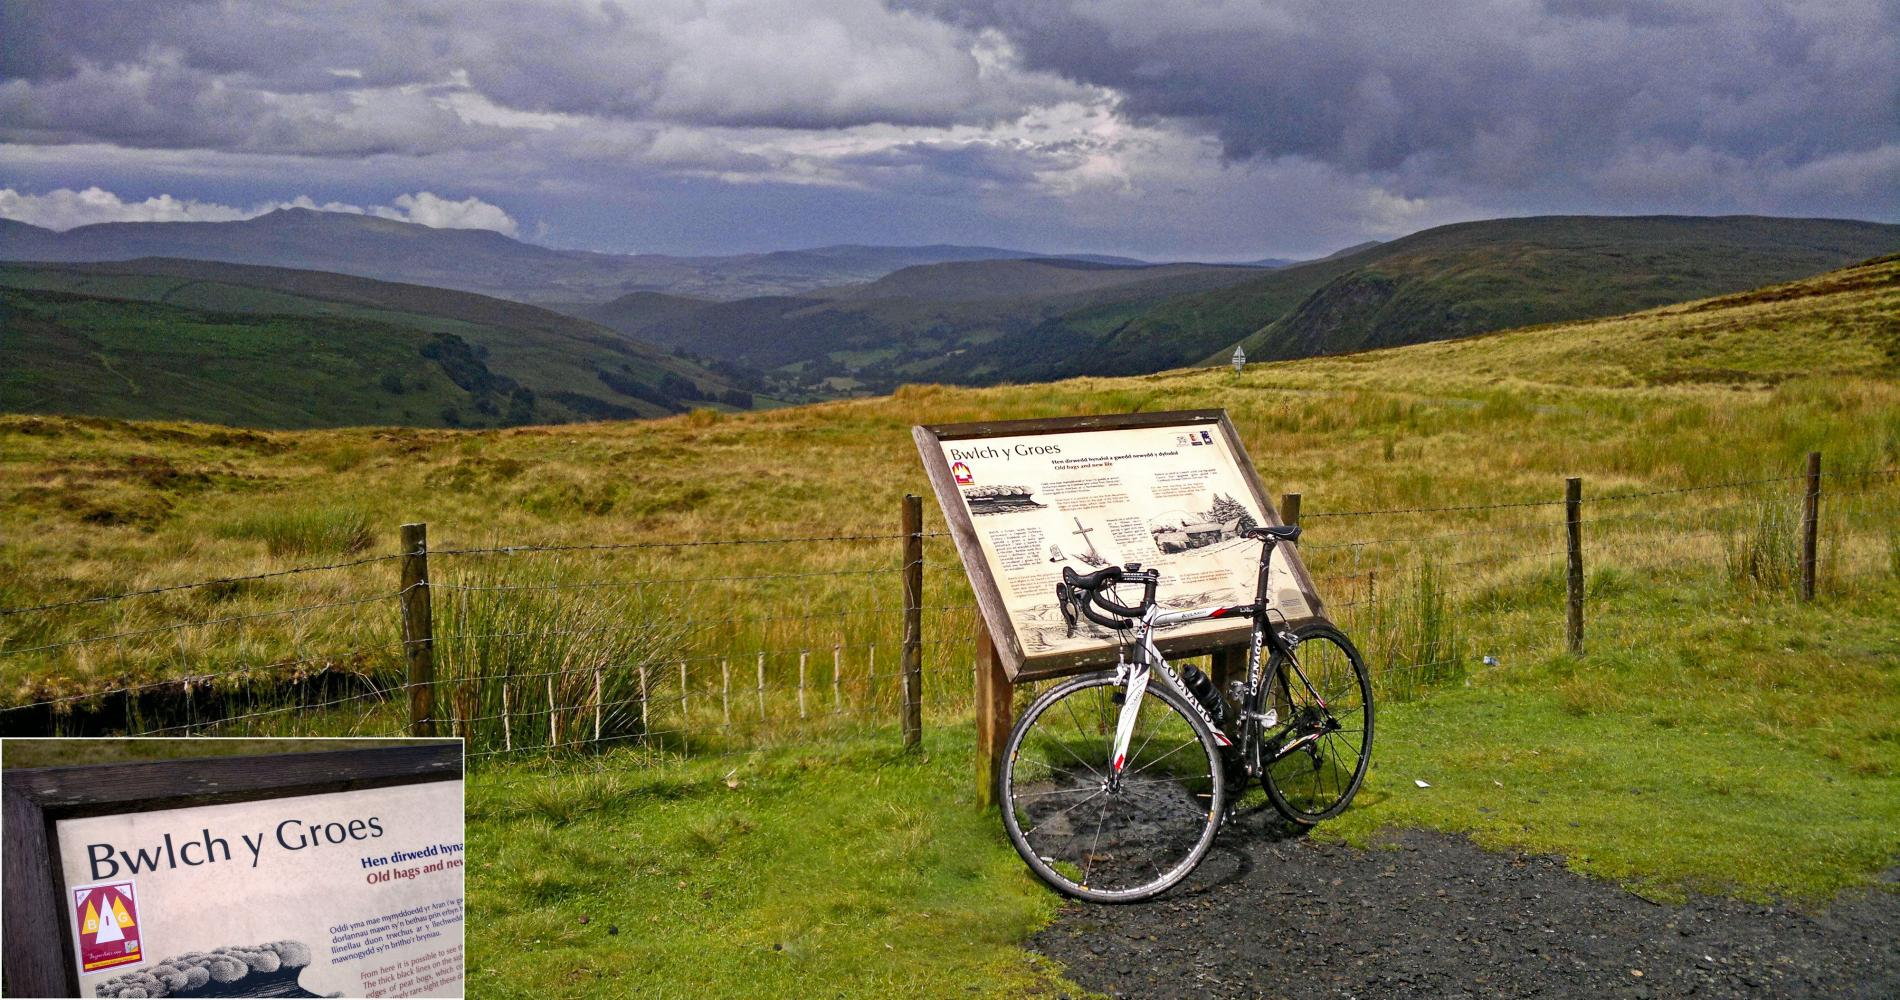 Bwlch-y-Groes South Bike Climb - PJAMM Cycling